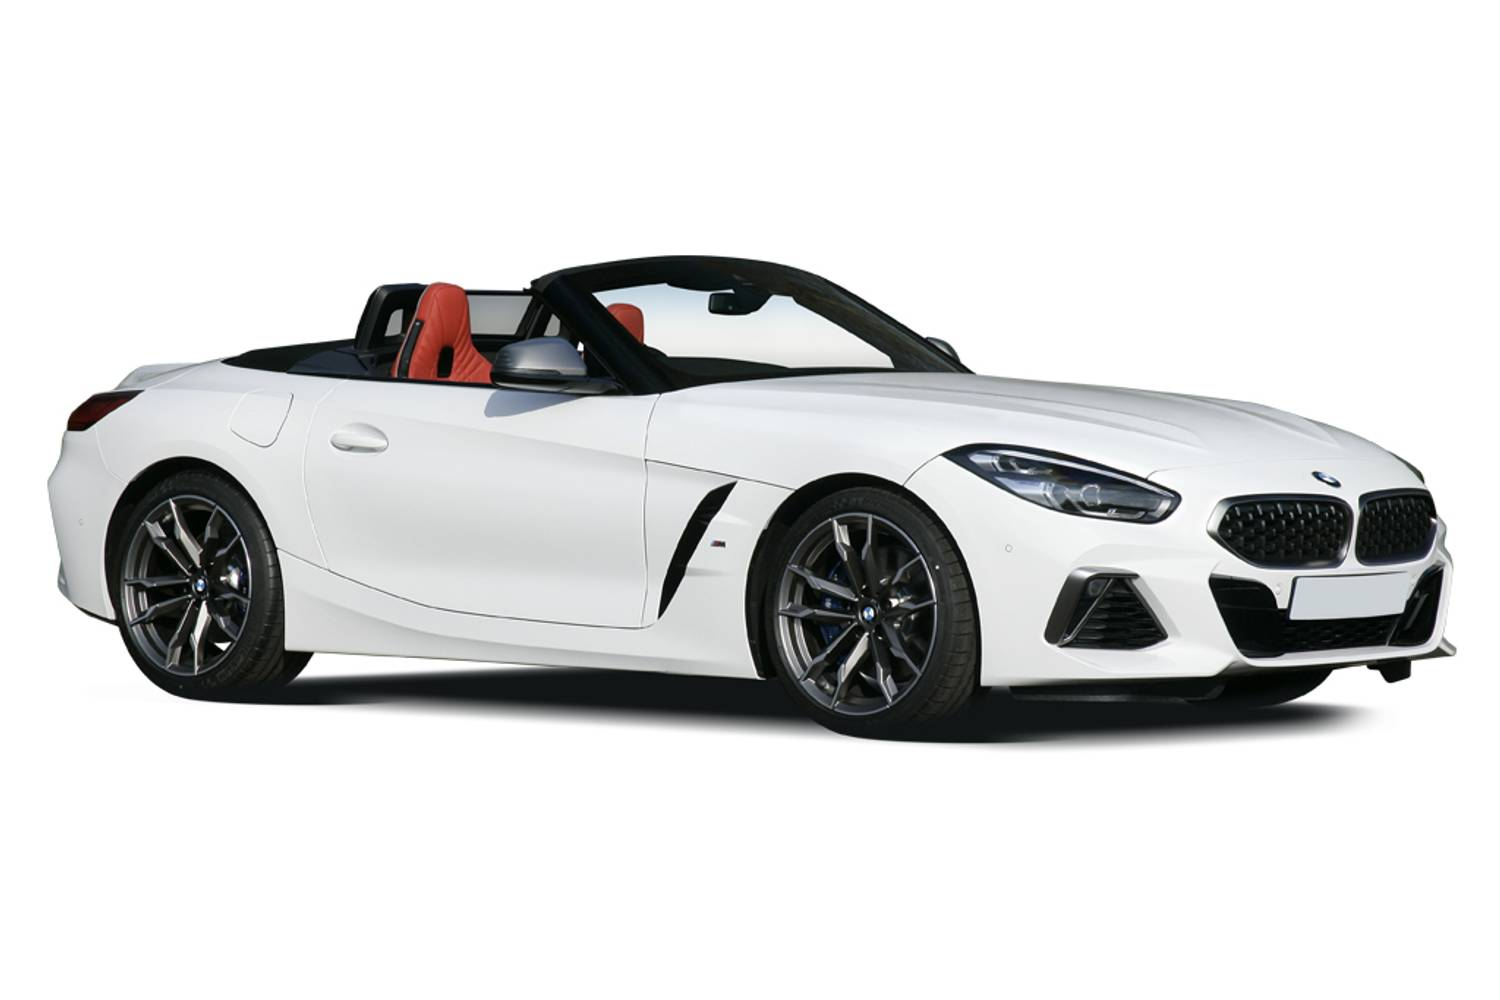 New Bmw Z4 Roadster Sdrive M40i 2 Door Auto 2019 For Sale